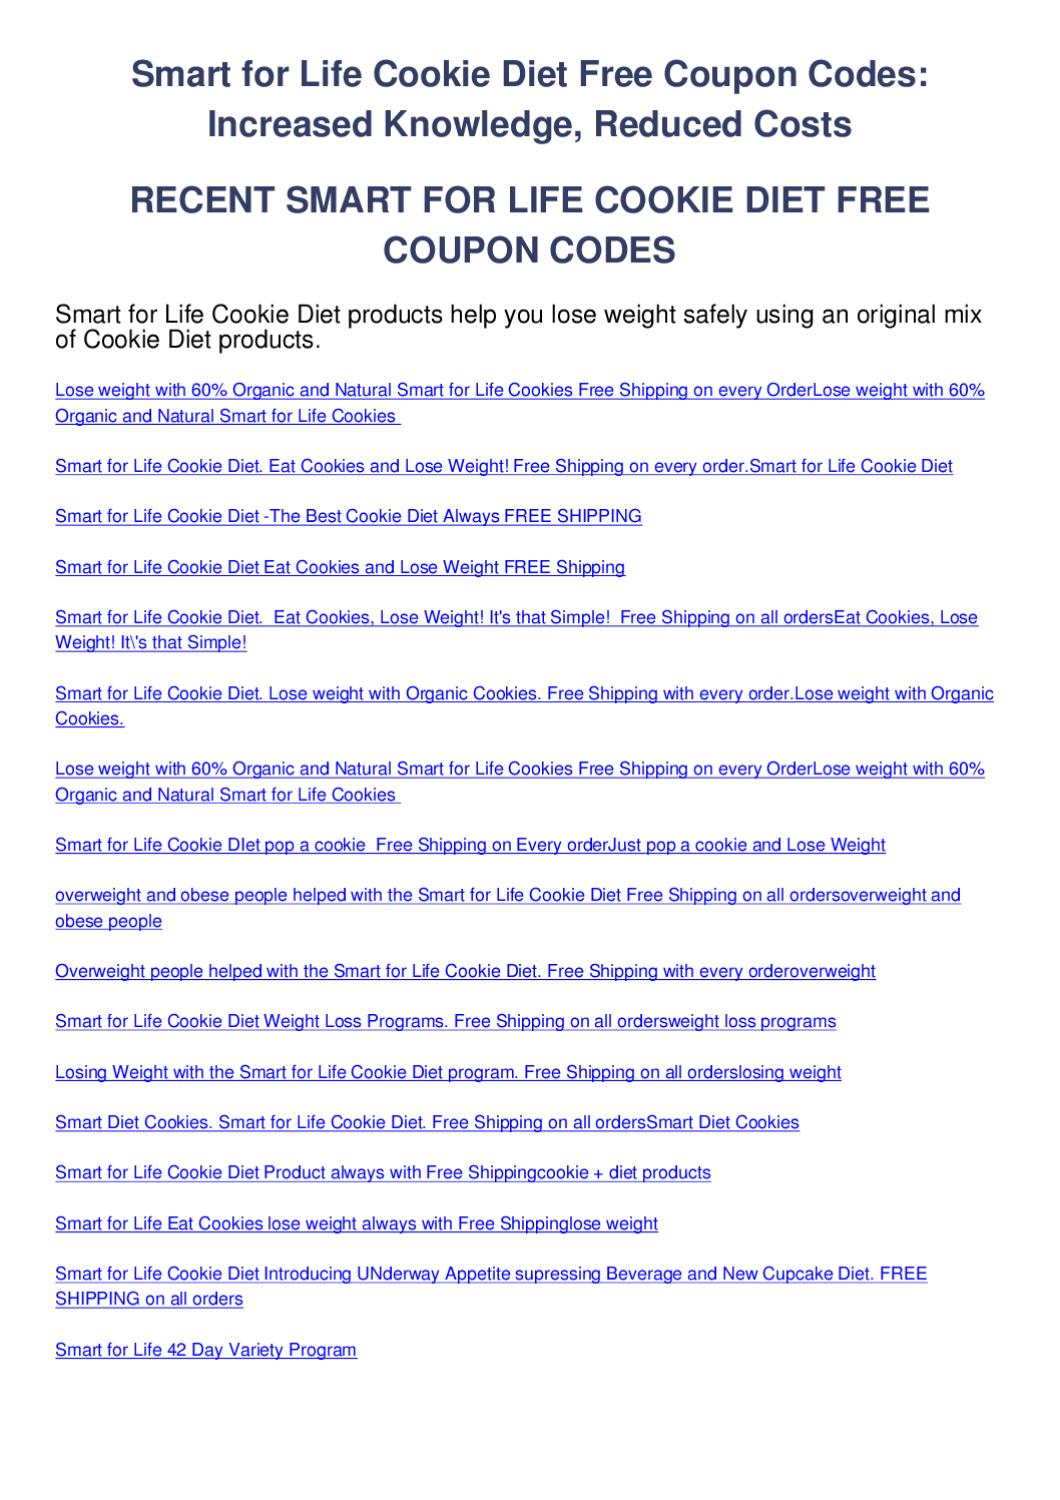 Expired Dinnerly Promo Codes